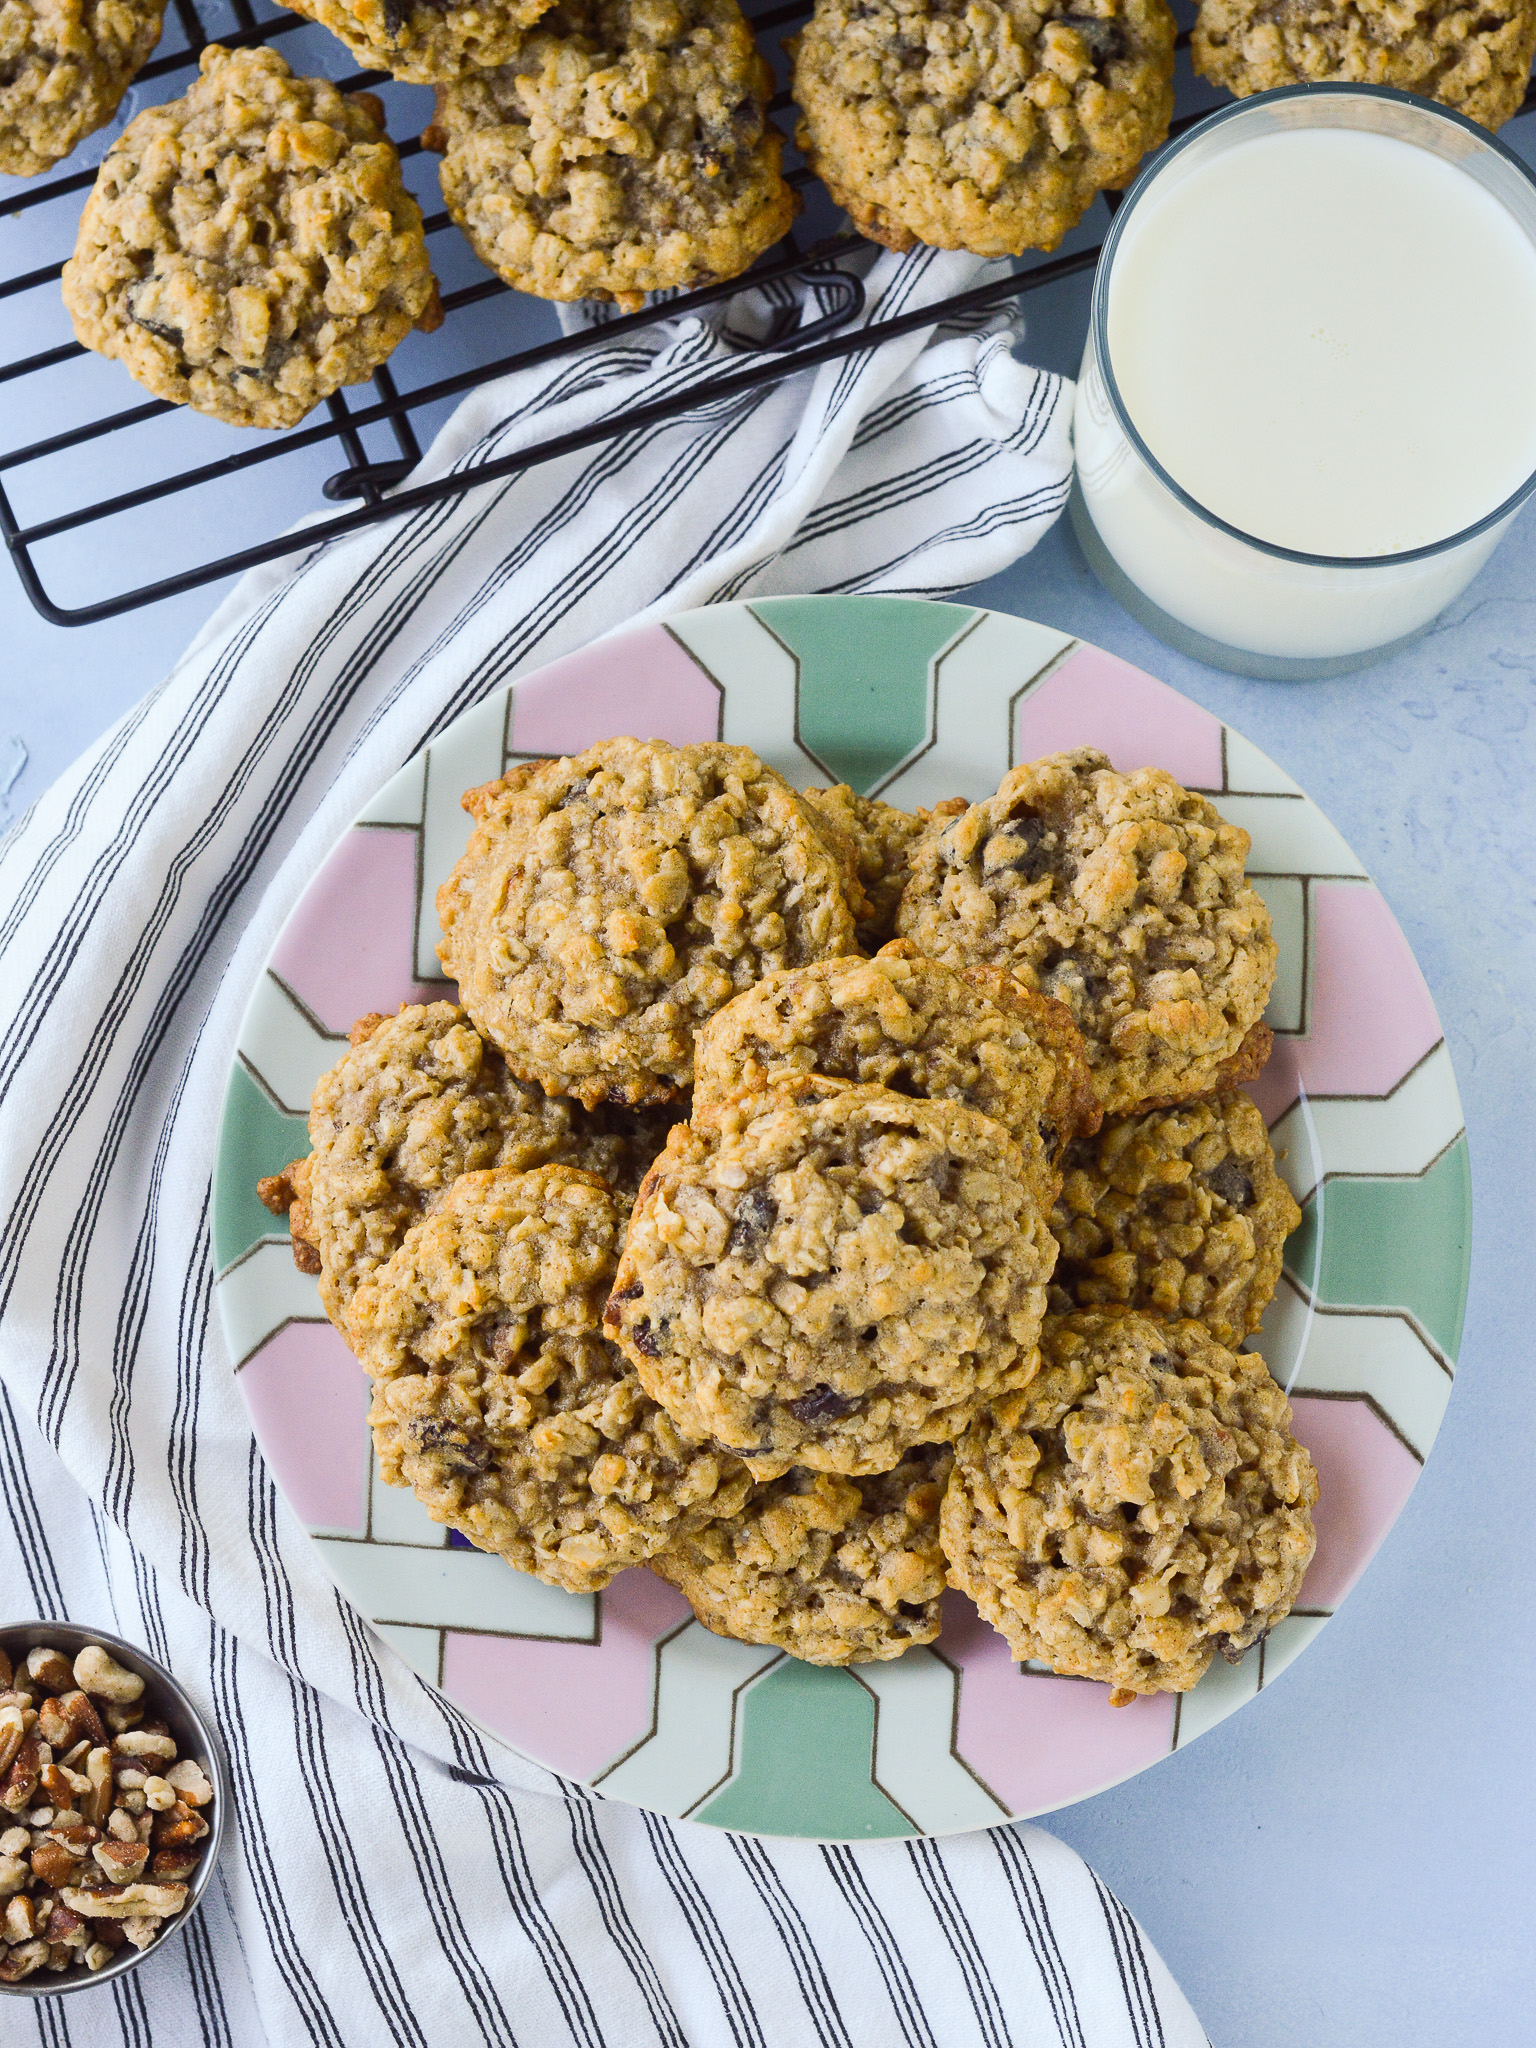 Overhead view of a big plate of Oatmeal Raisin Cookies with a portion of walnuts nearby as well as more cookies cooling on a rack and a glass of milk.